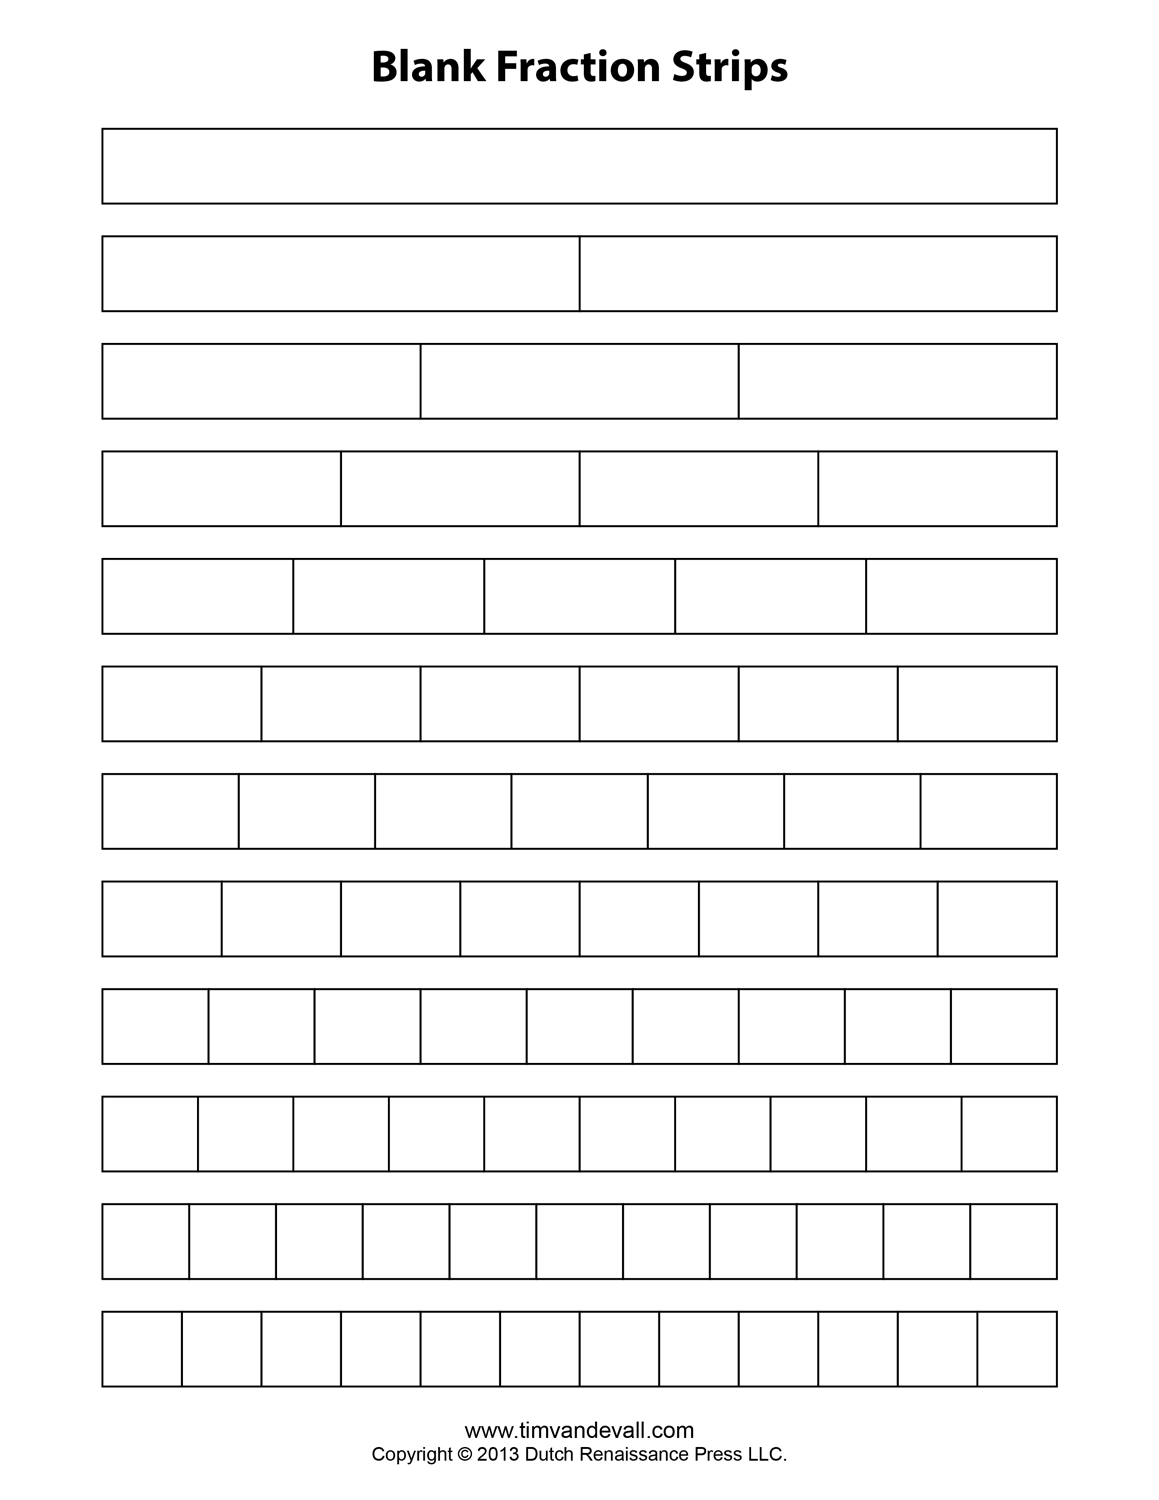 Blank Fraction Bars For Students To Fill In During Testing